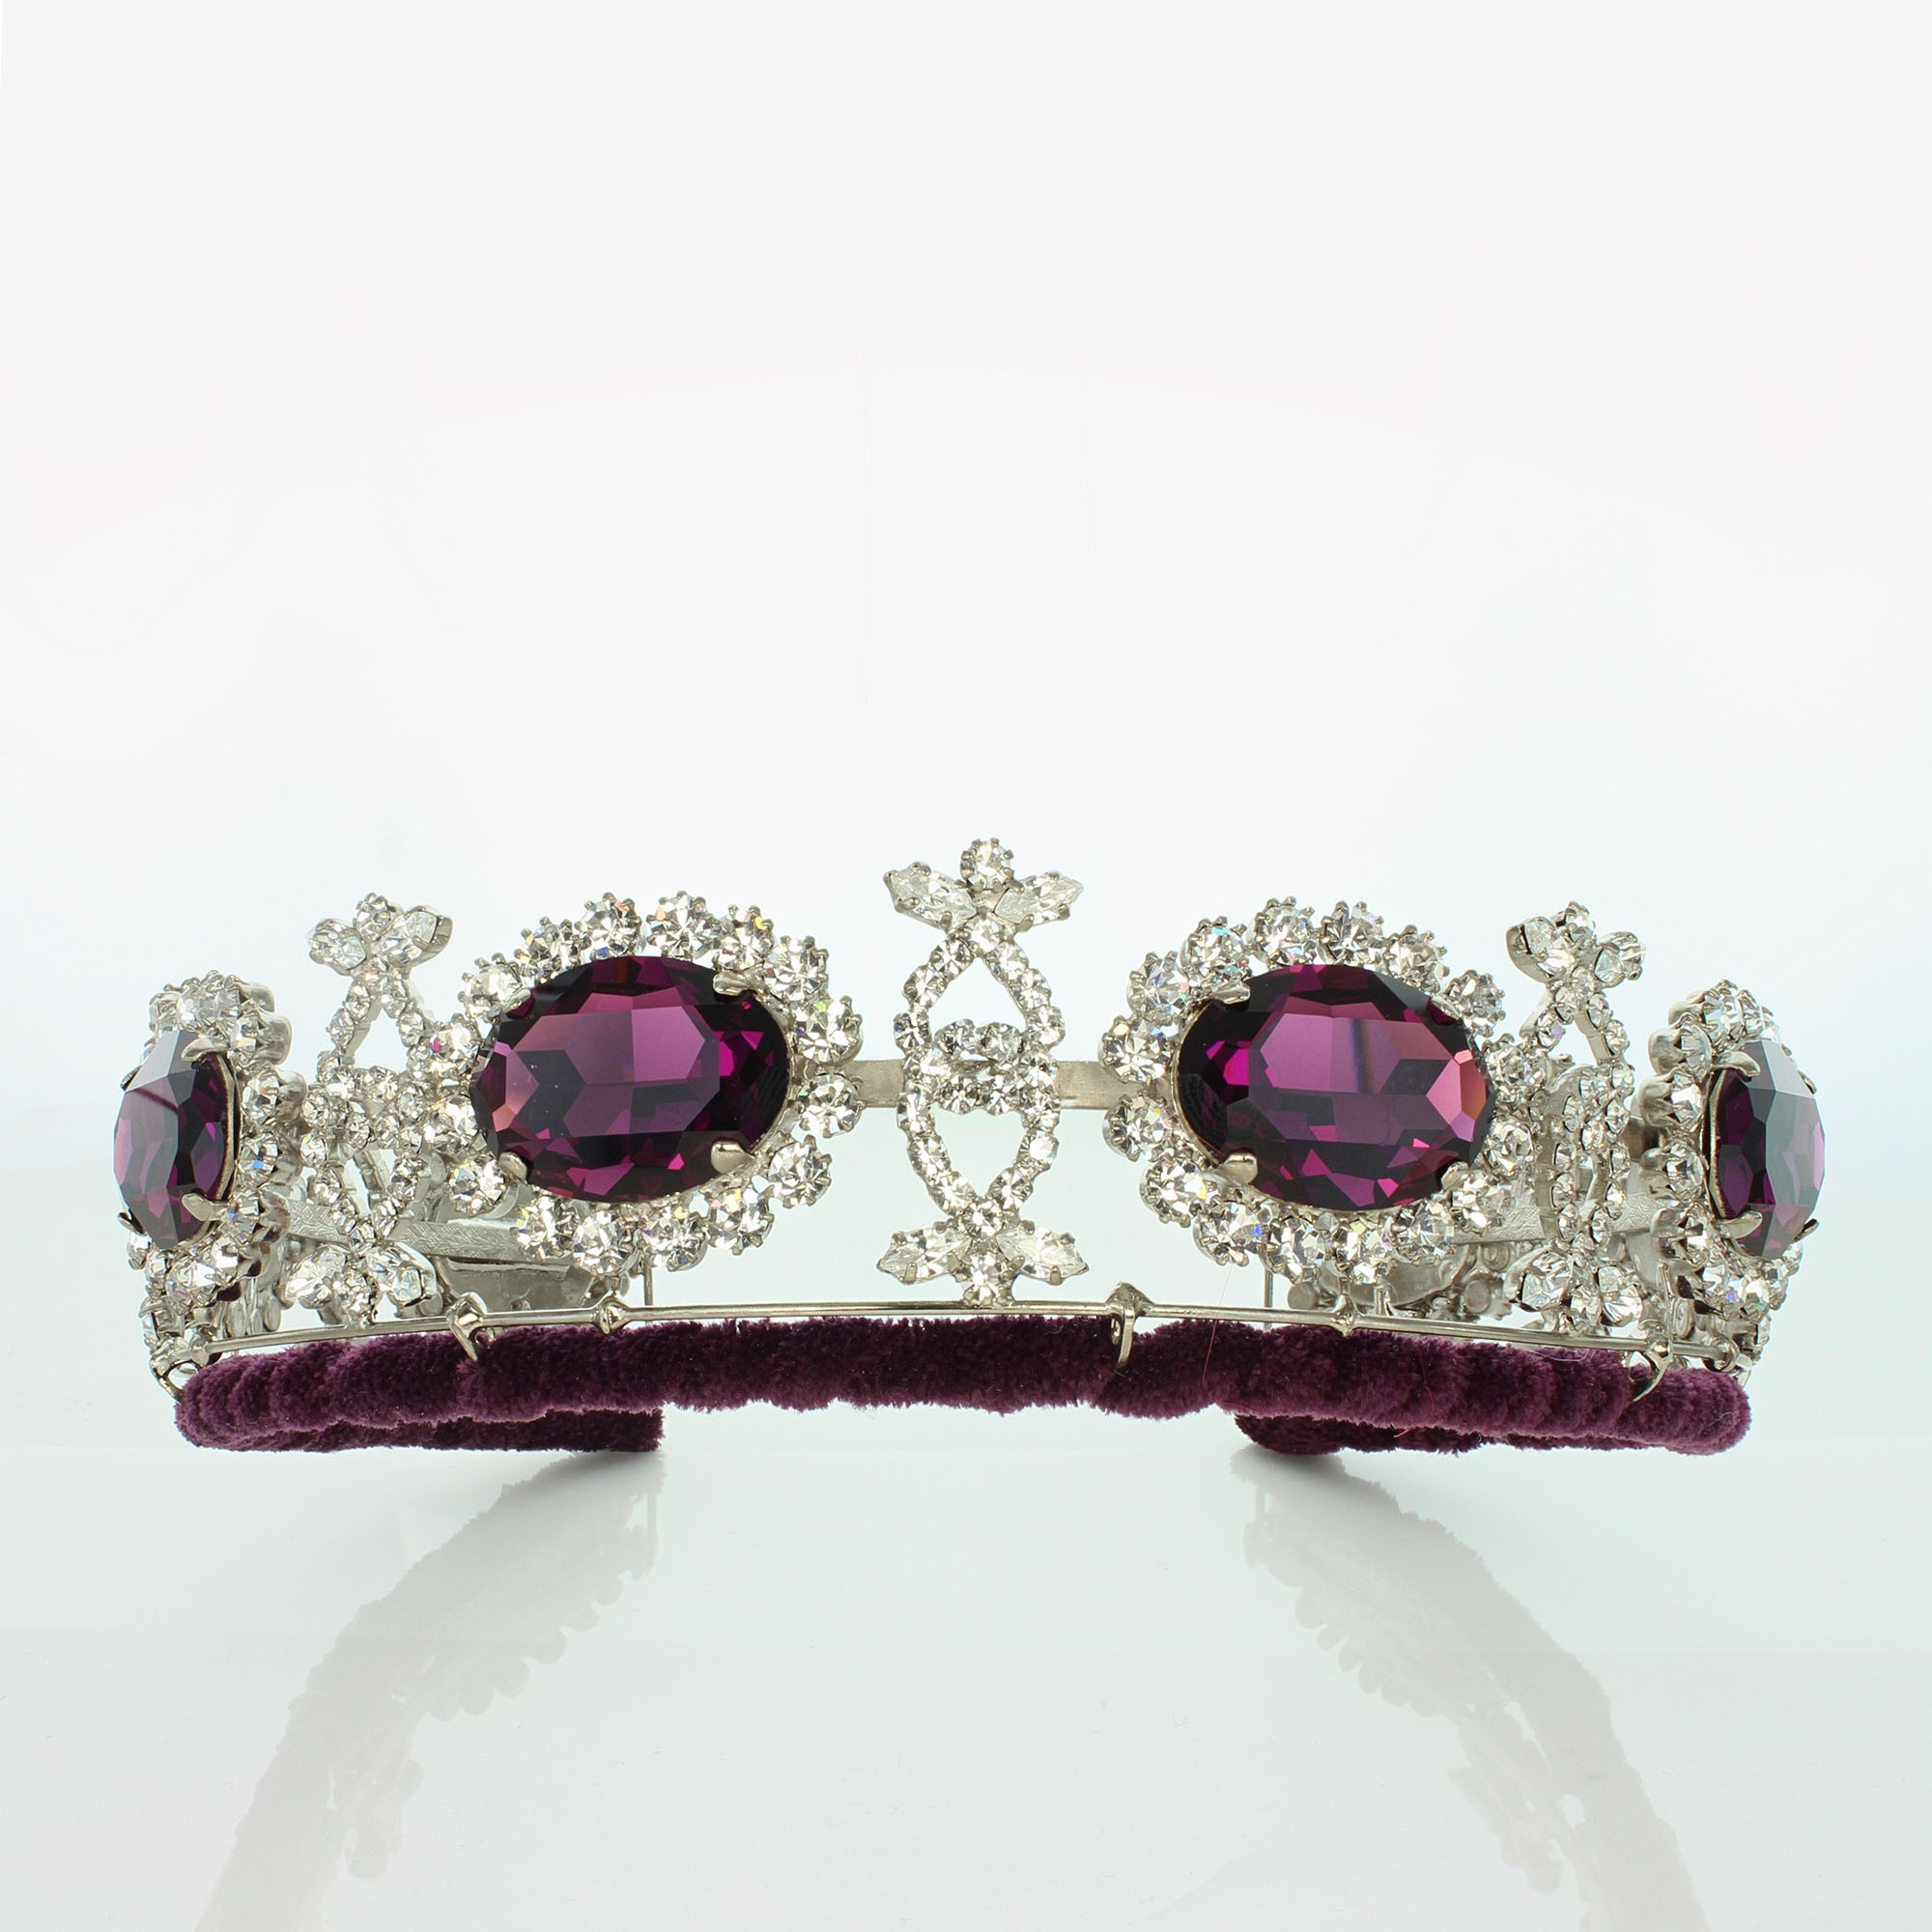 February's Famous Amethyst: The Swedish Amethyst Tiara